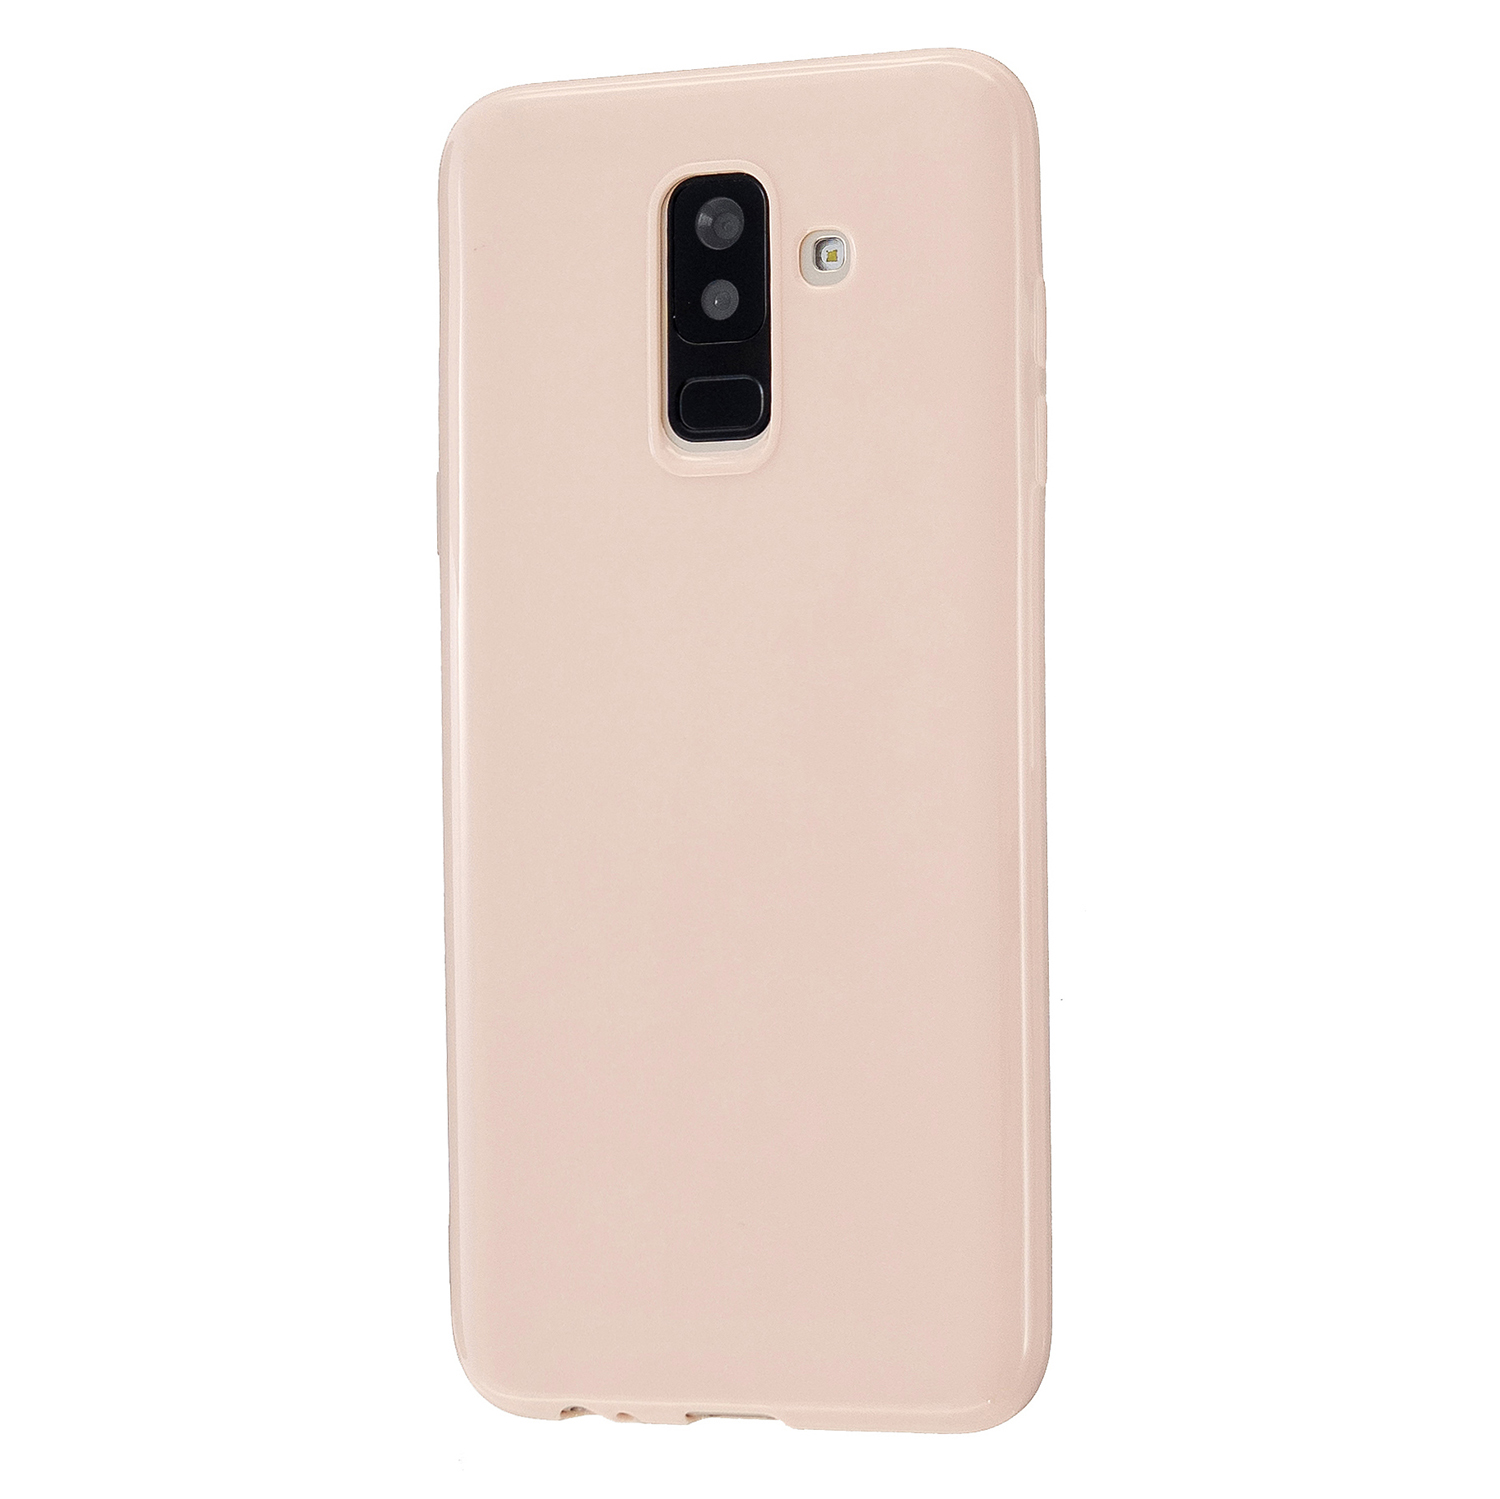 For Samsung A6/A6 Plus 2018 Smartphone Case Soft TPU Precise Cutouts Full Body Protection Mobile Phone Shell Sakura pink